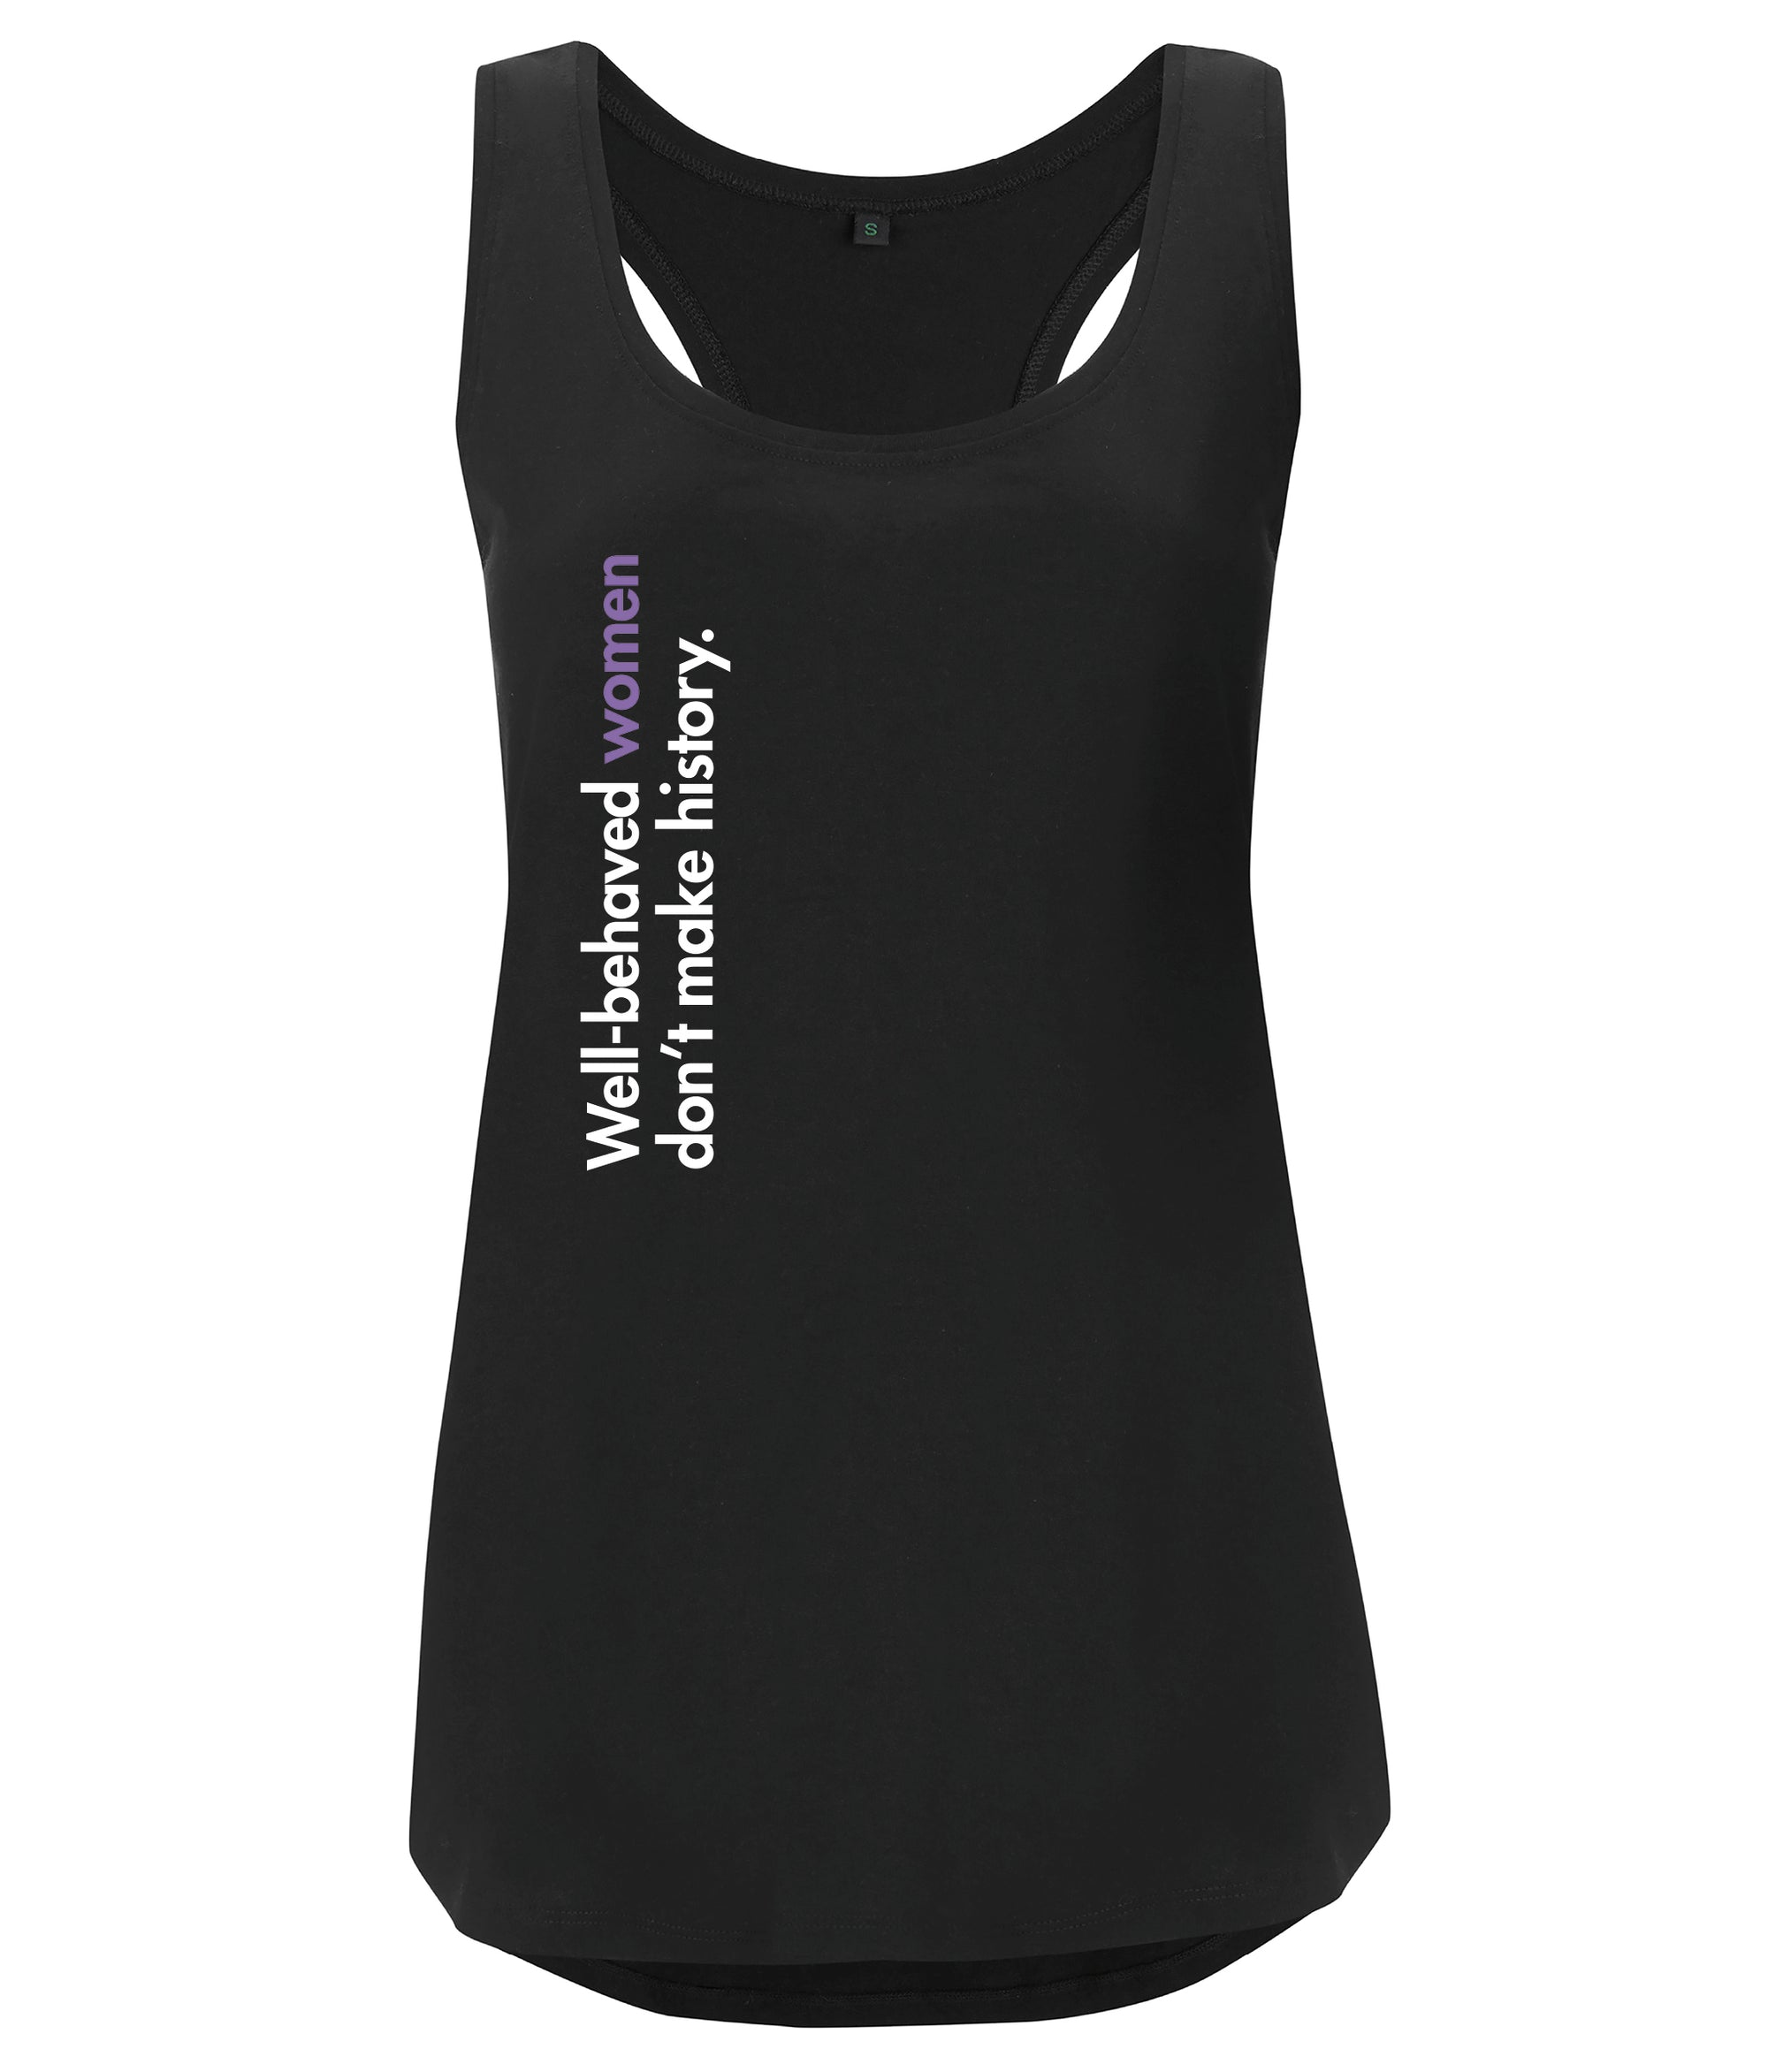 Well Behaved Women Don't Make History Organic Feminist Racerback Vest Black